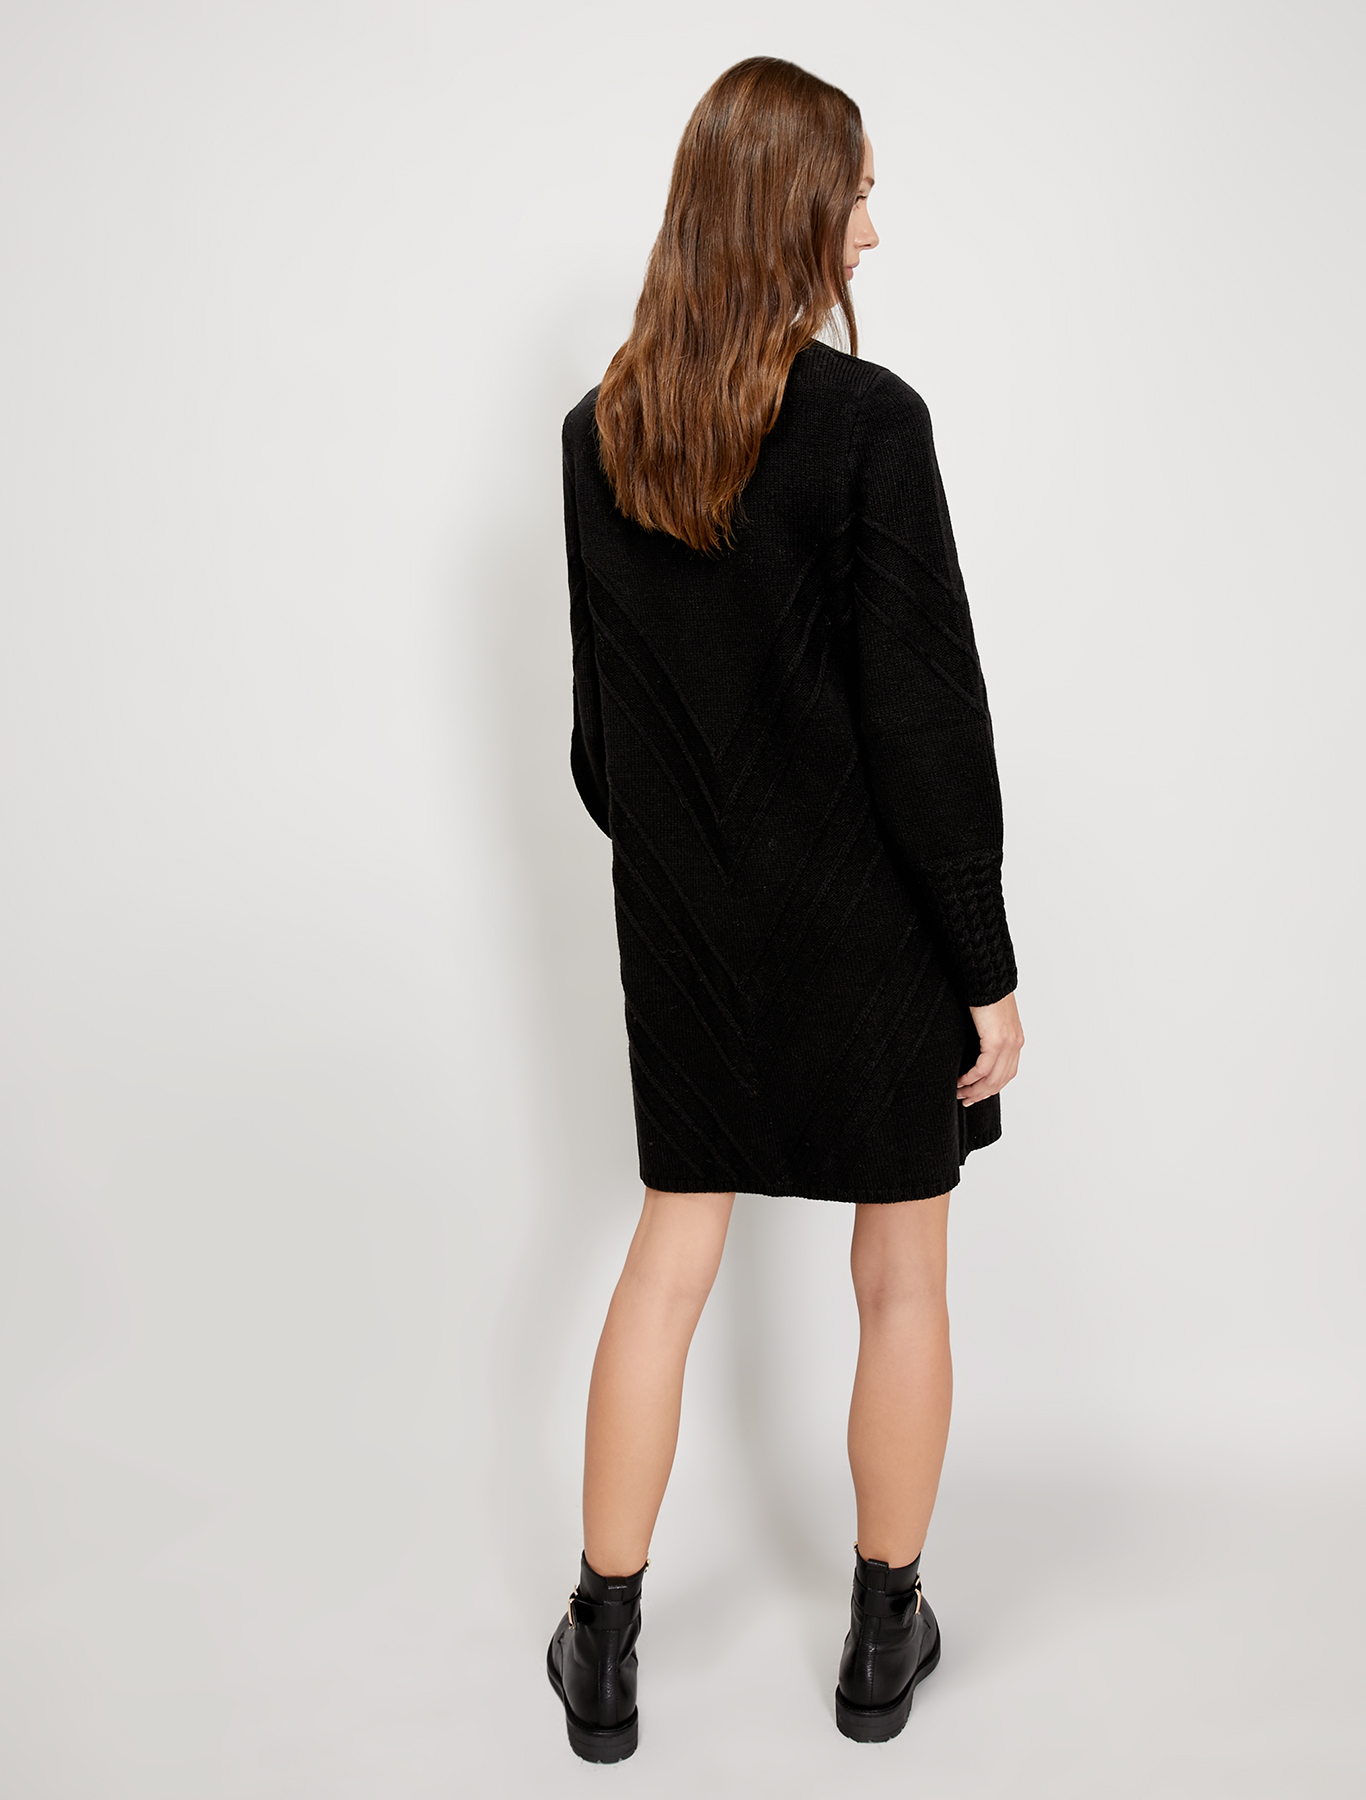 Ribbed and cable-knit jumper dress - black - pennyblack